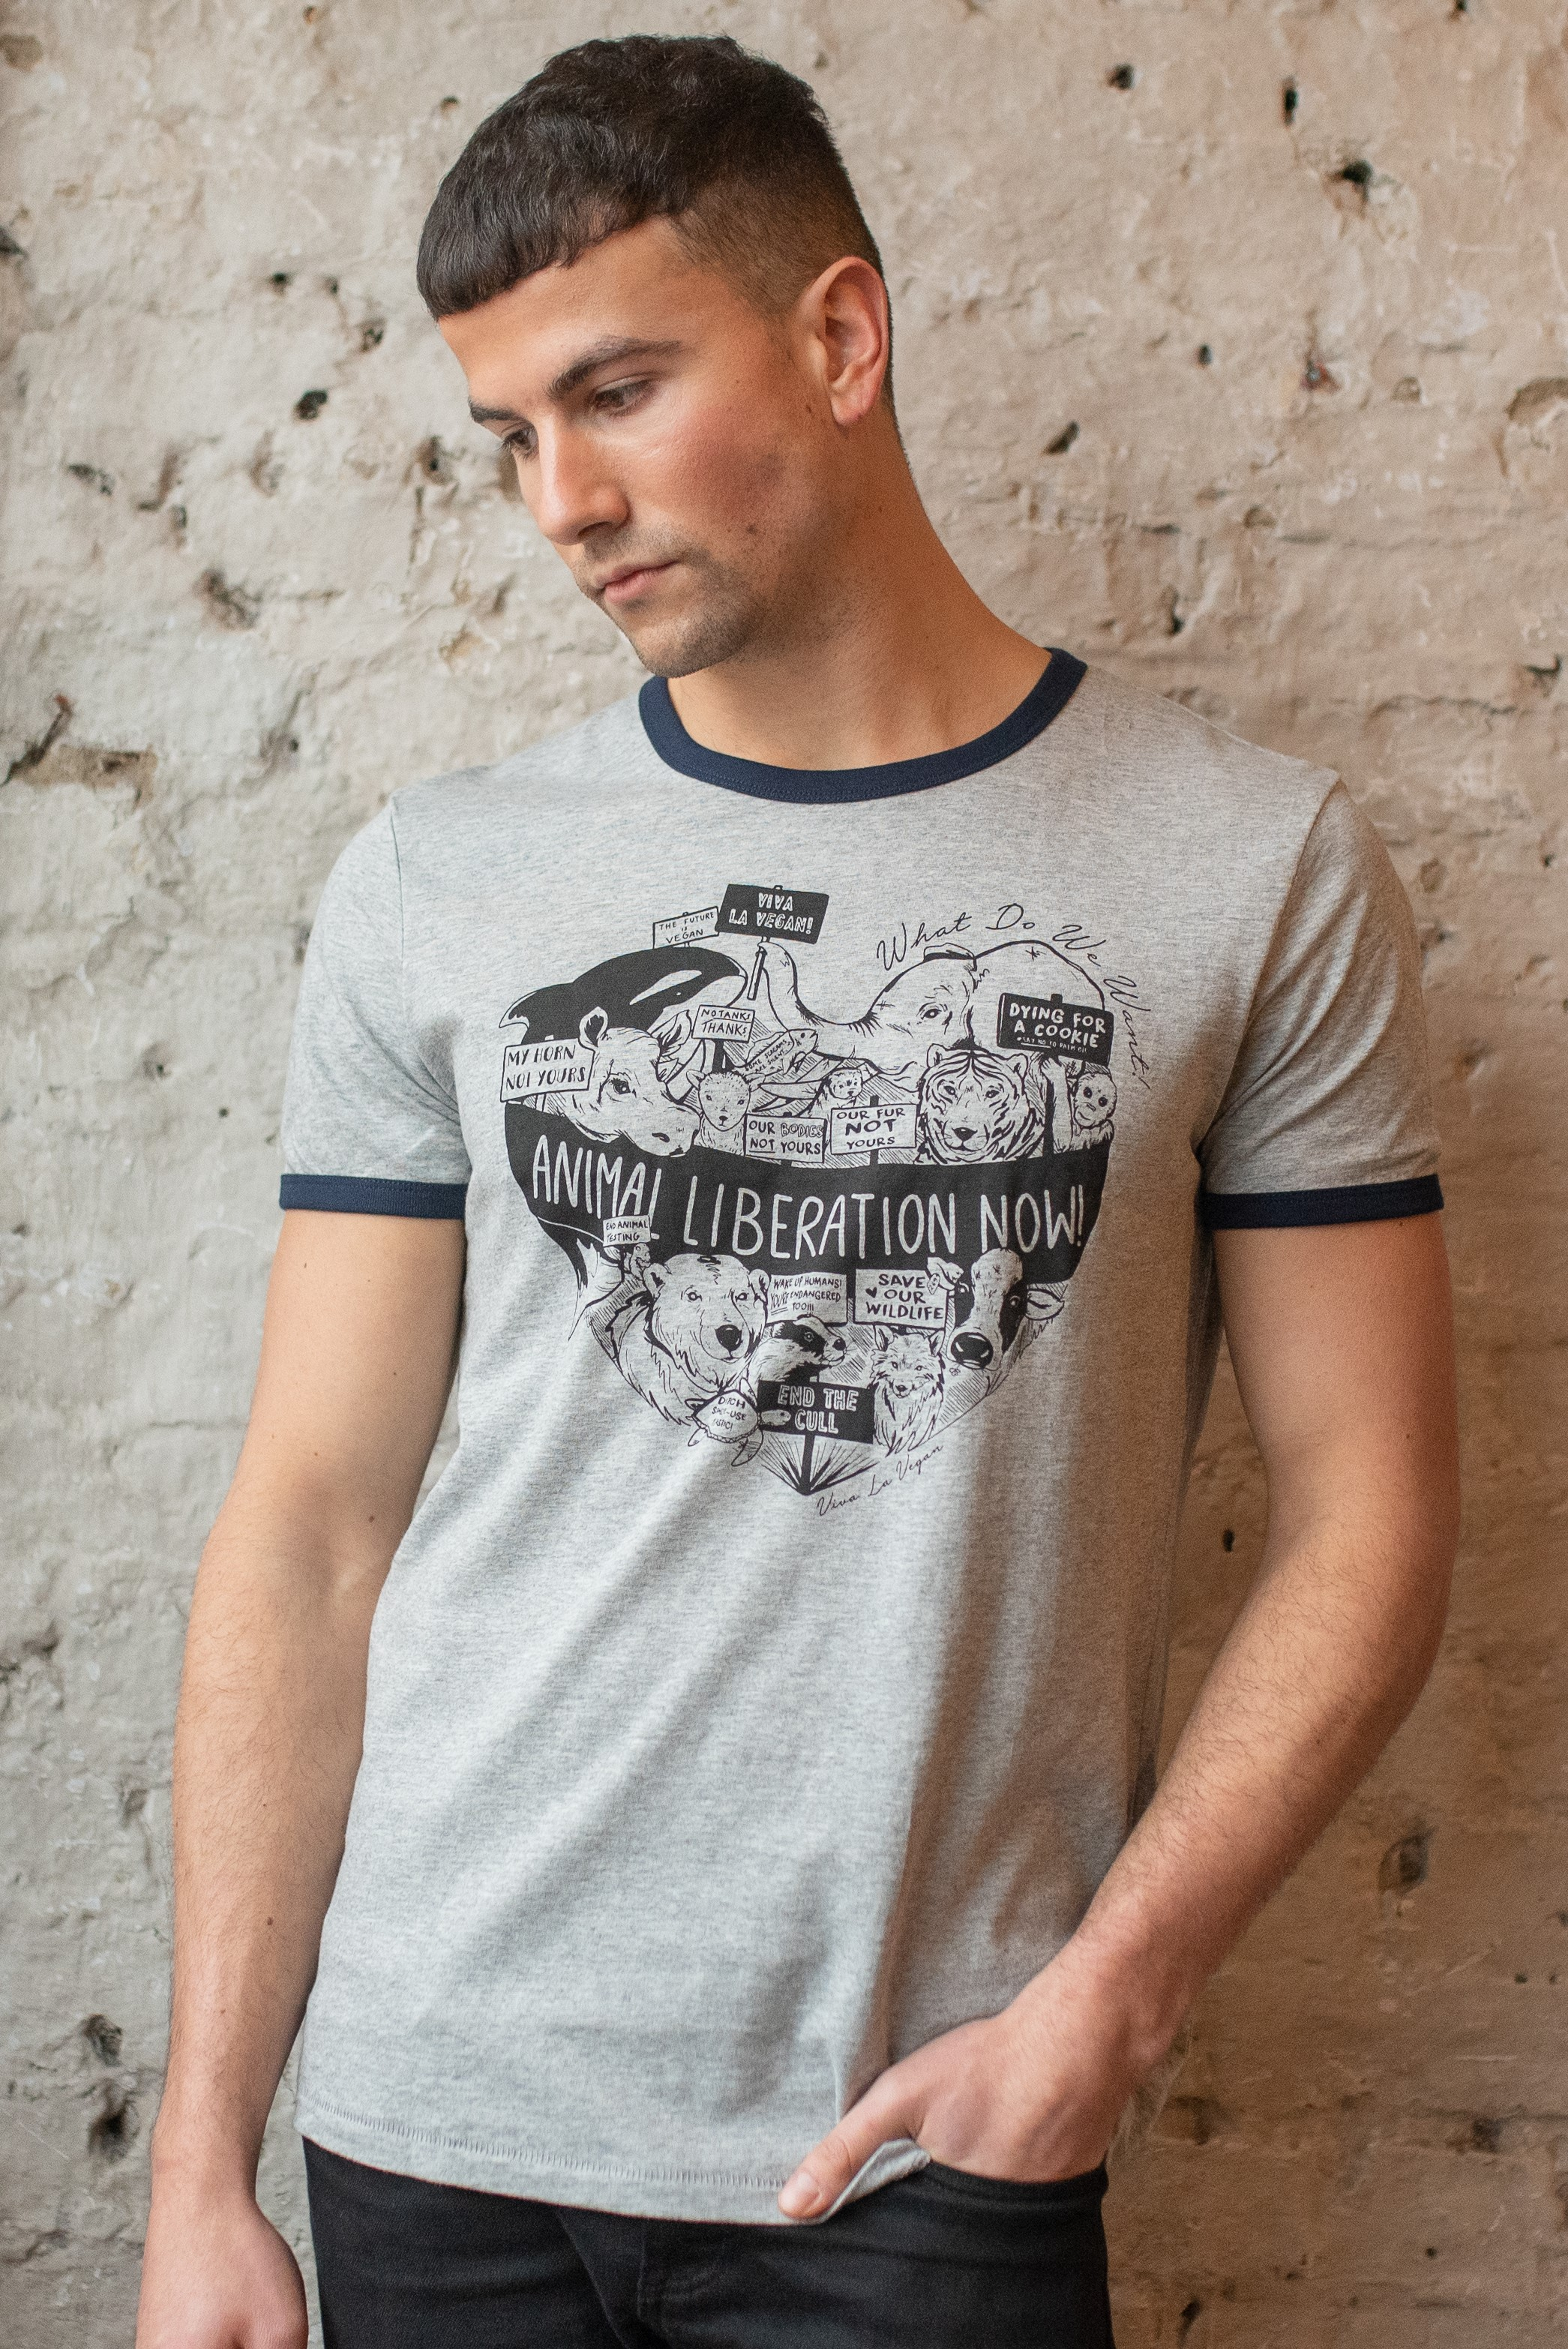 male model wearing unisex style animal liberation designed t shirt